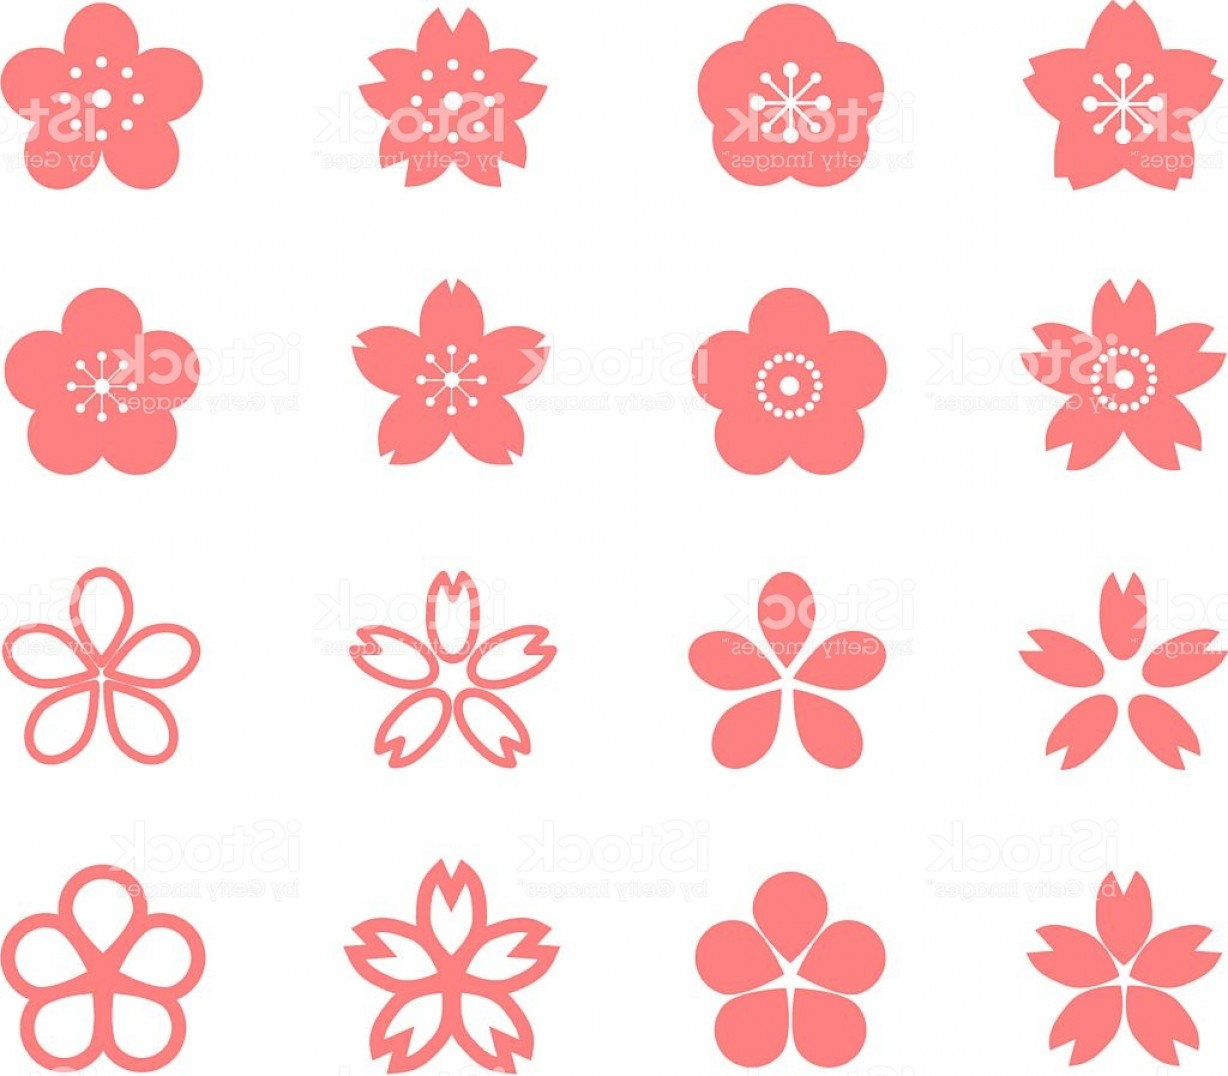 Icon Of Flower Vectors: Icon Of Cherry Blossom Gm